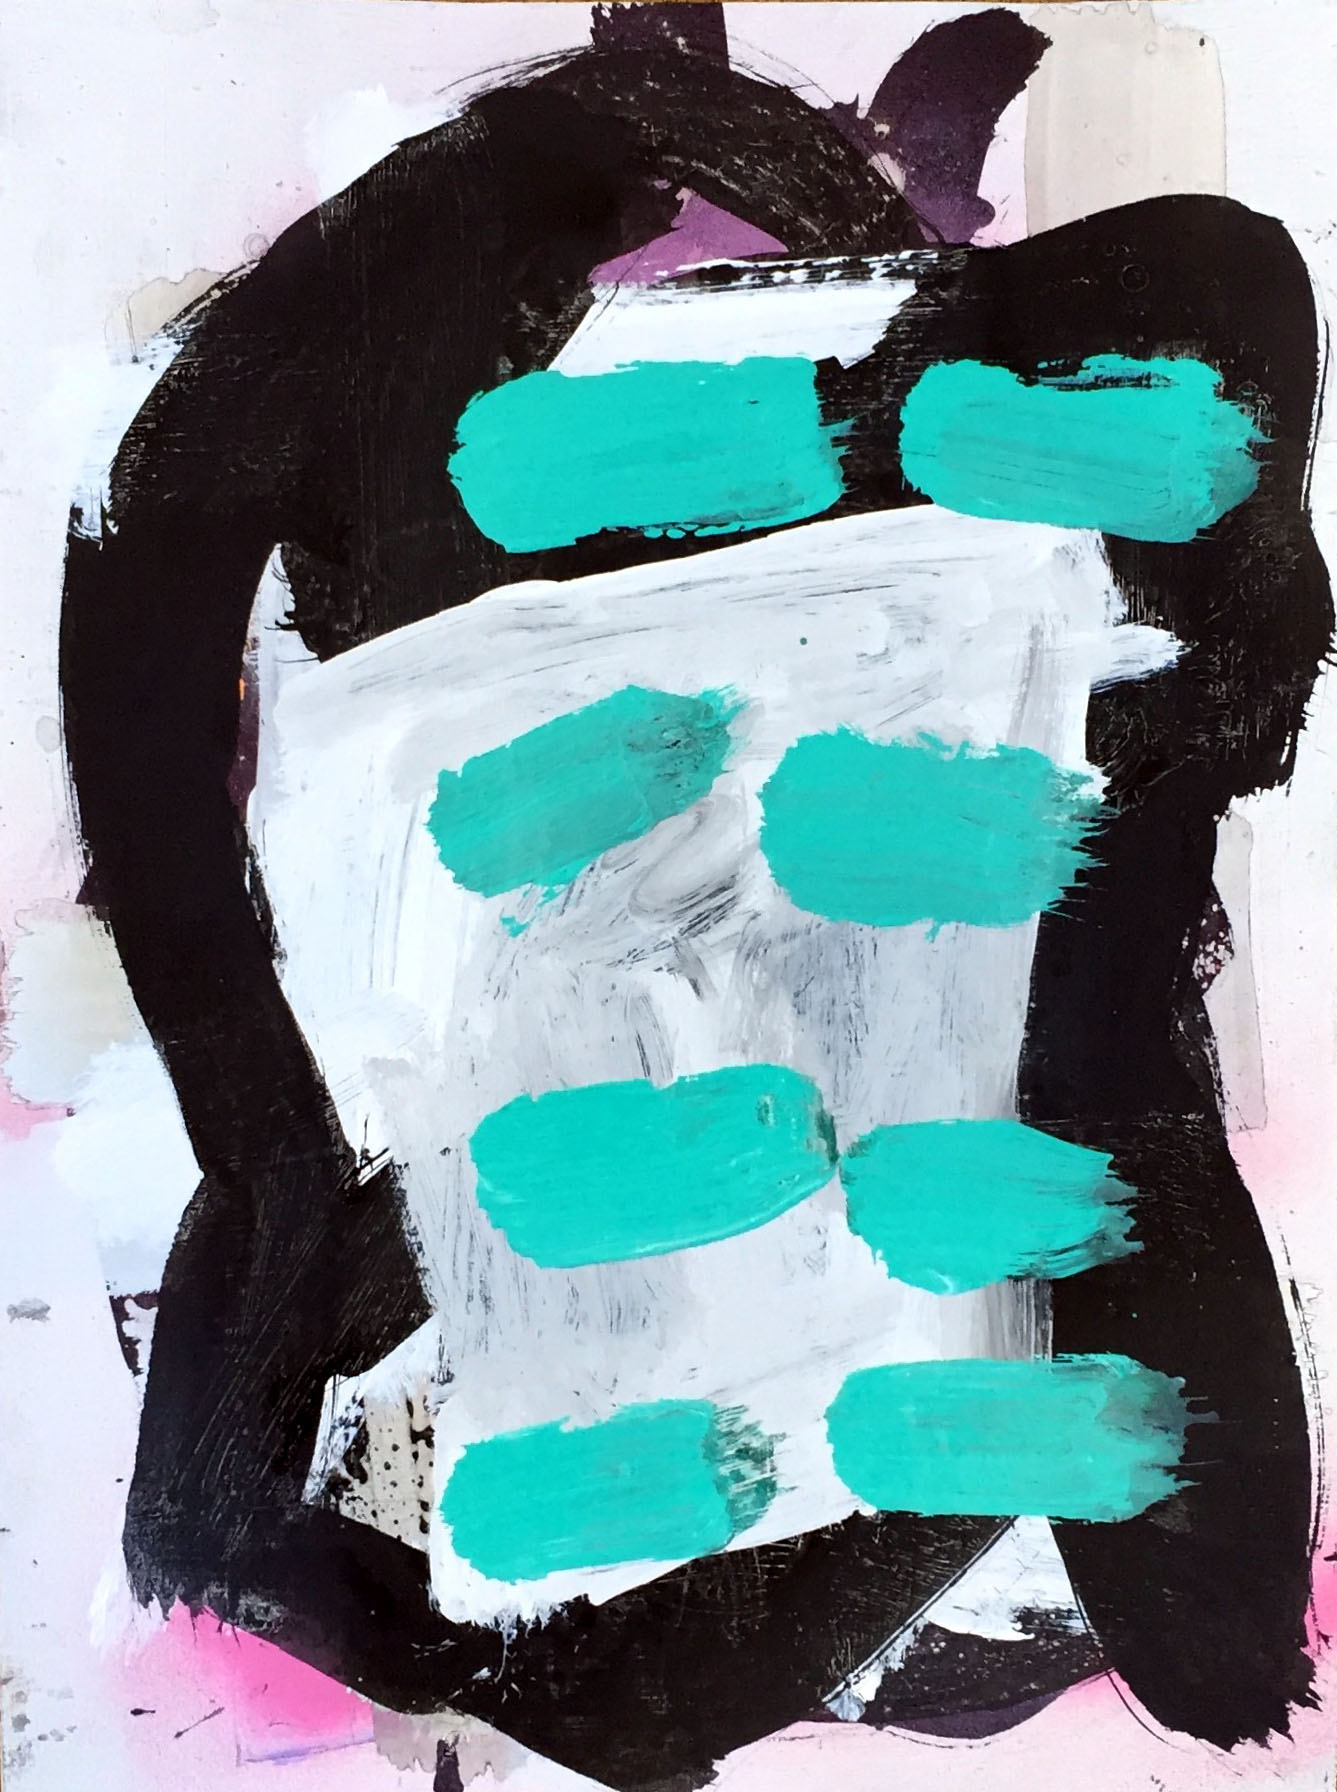 03 acrylic, india ink and spray paint on paper 9 in x 12 in